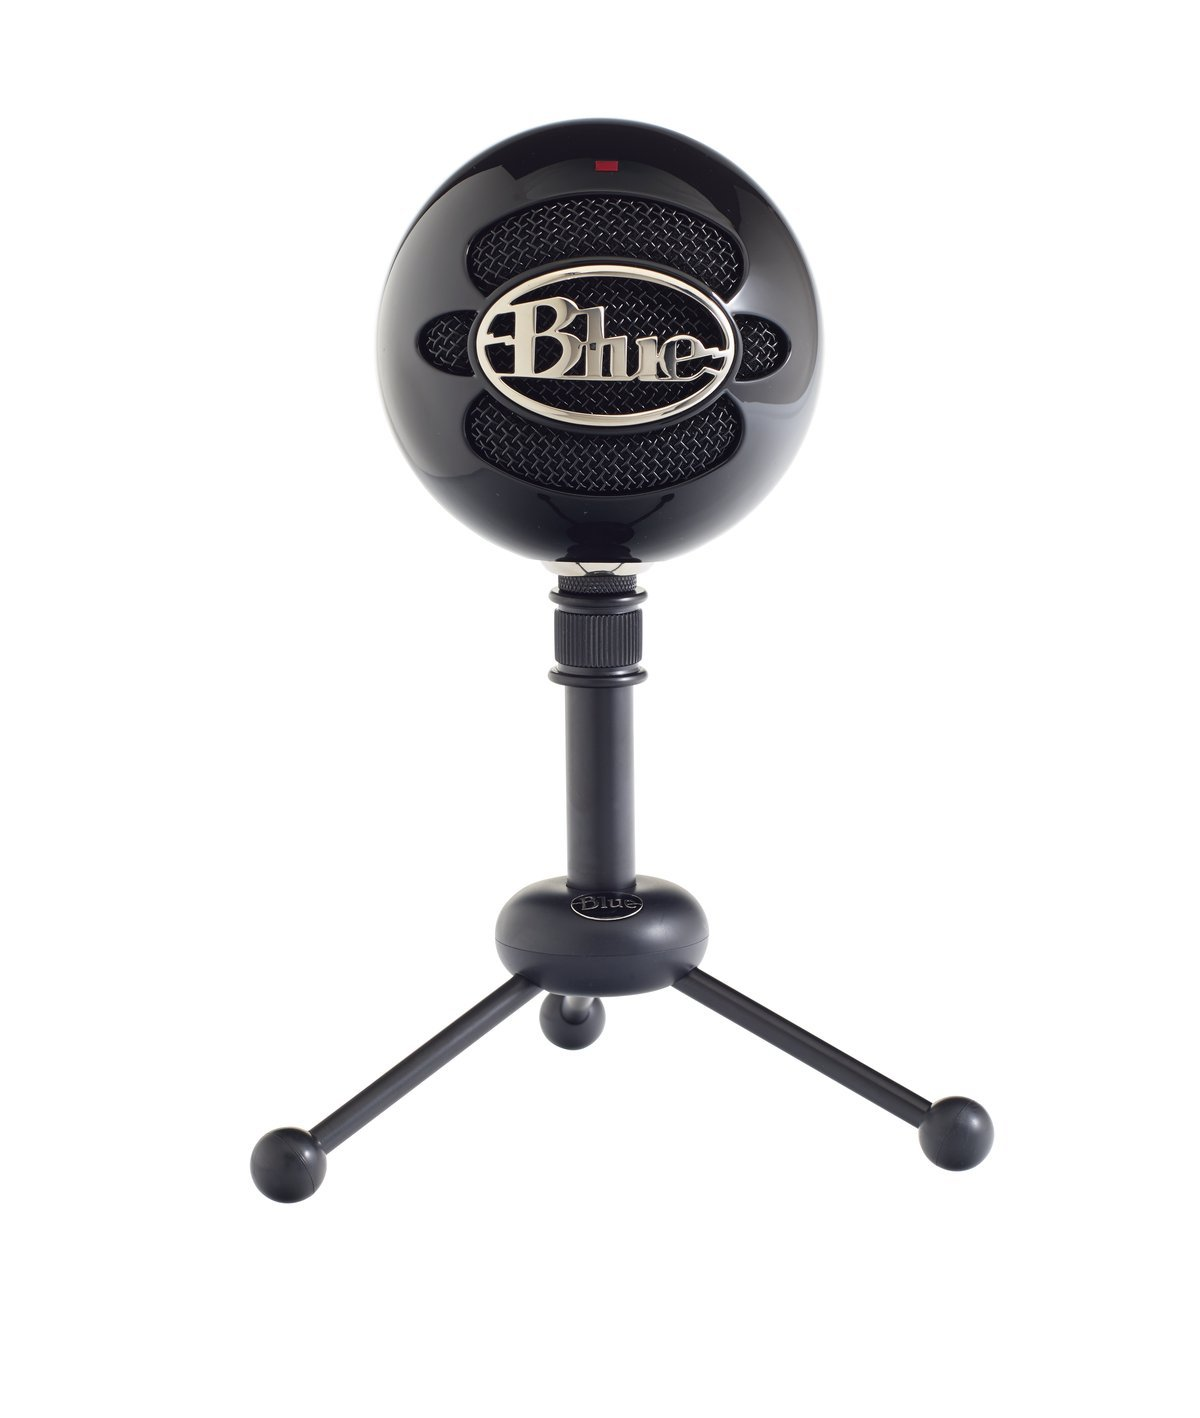 Blue Snowball USB Microphone Black (Certified Refurbished)